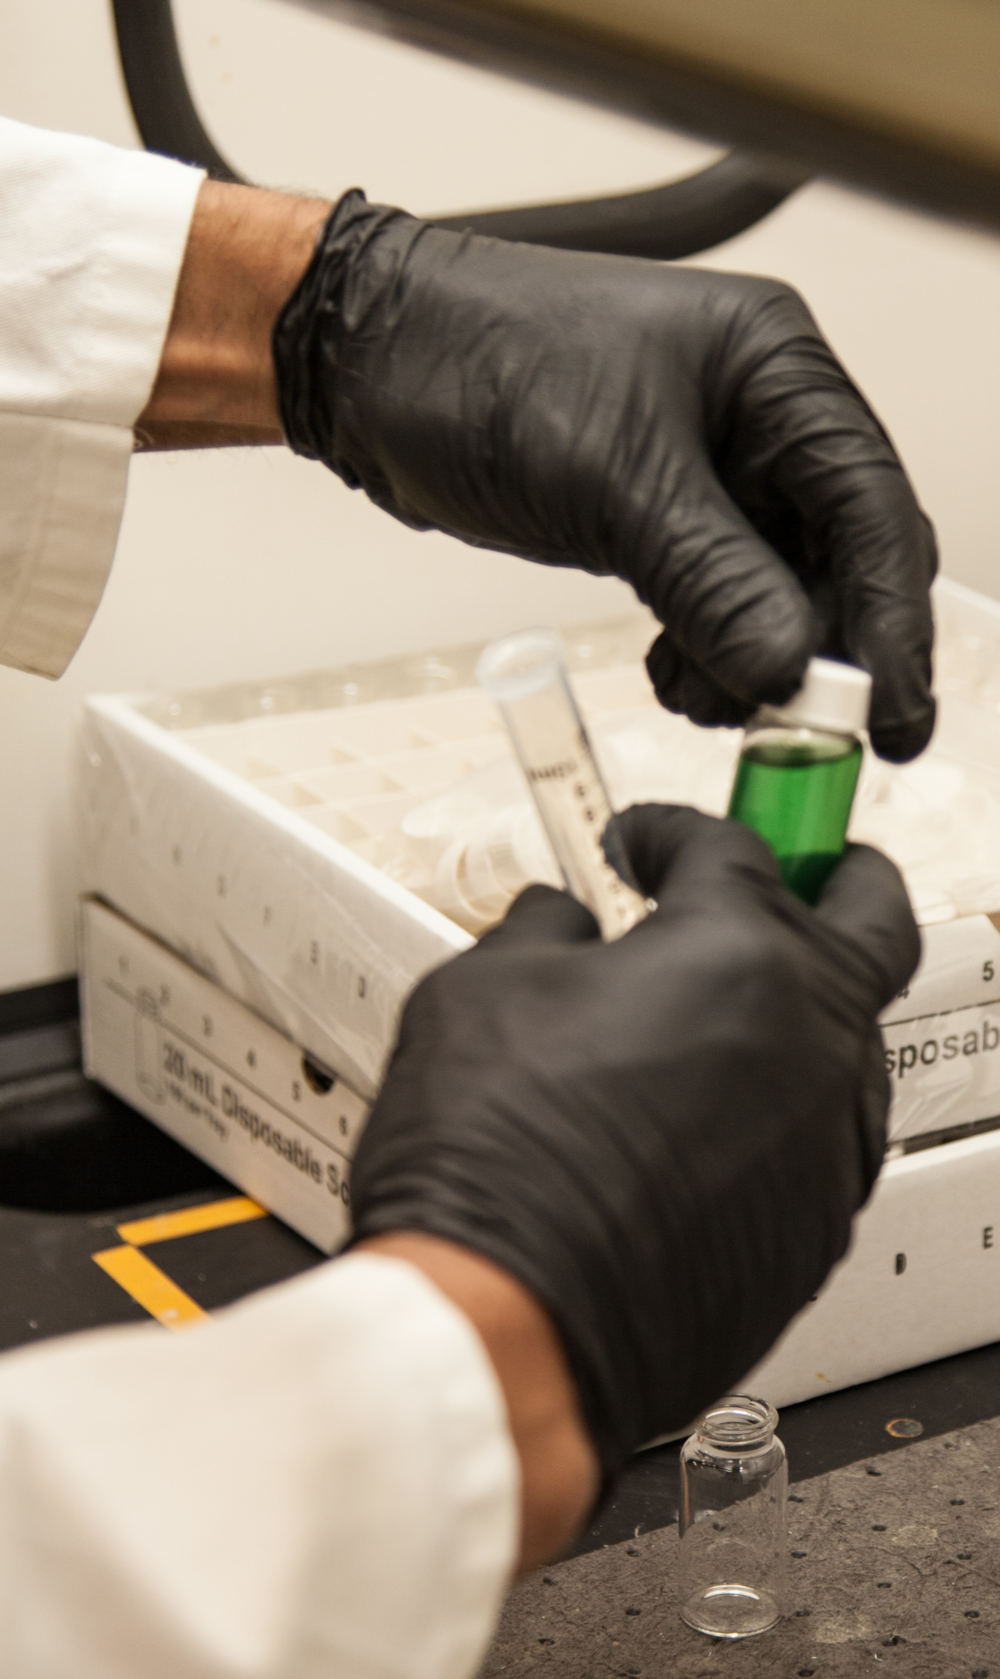 Analyzing samples from ROL process